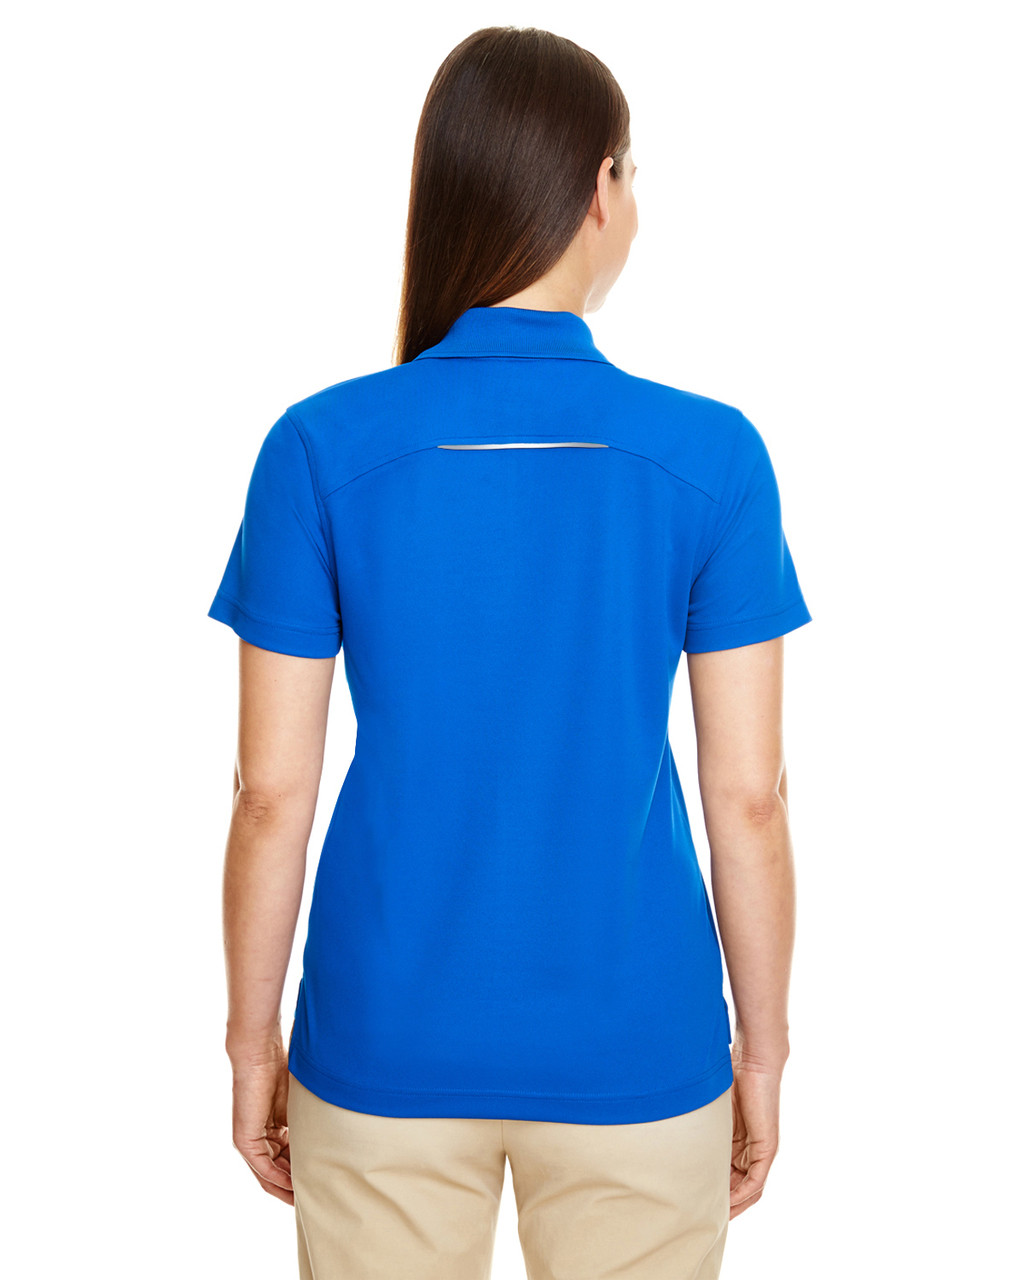 True Royal - Back 78181R Ash City - Core 365 Ladies' Radiant Performance Piqué Polo Shirt with Reflective Piping | Blankclothing.ca